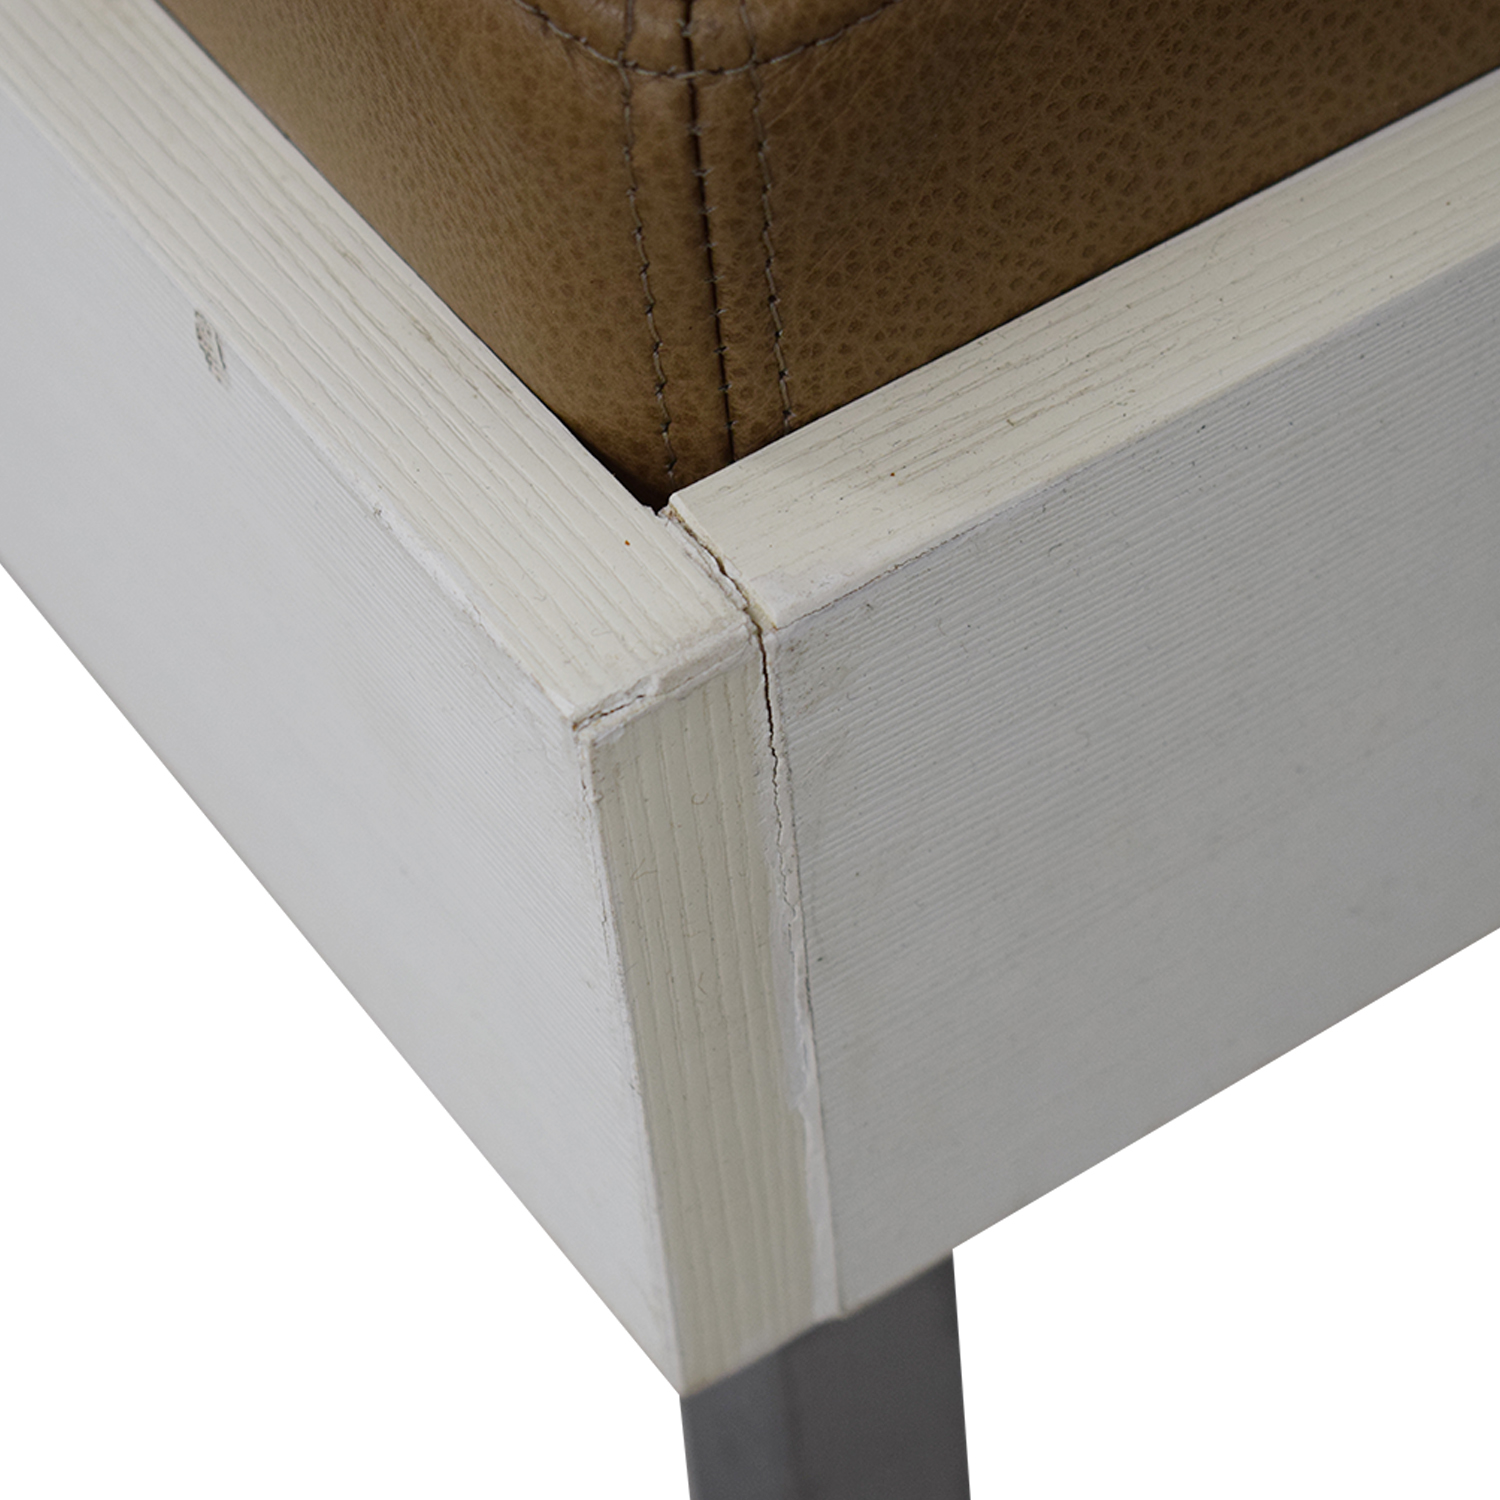 Furniture Masters Furniture Masters Wood and Leather Tufted Bench white and brown